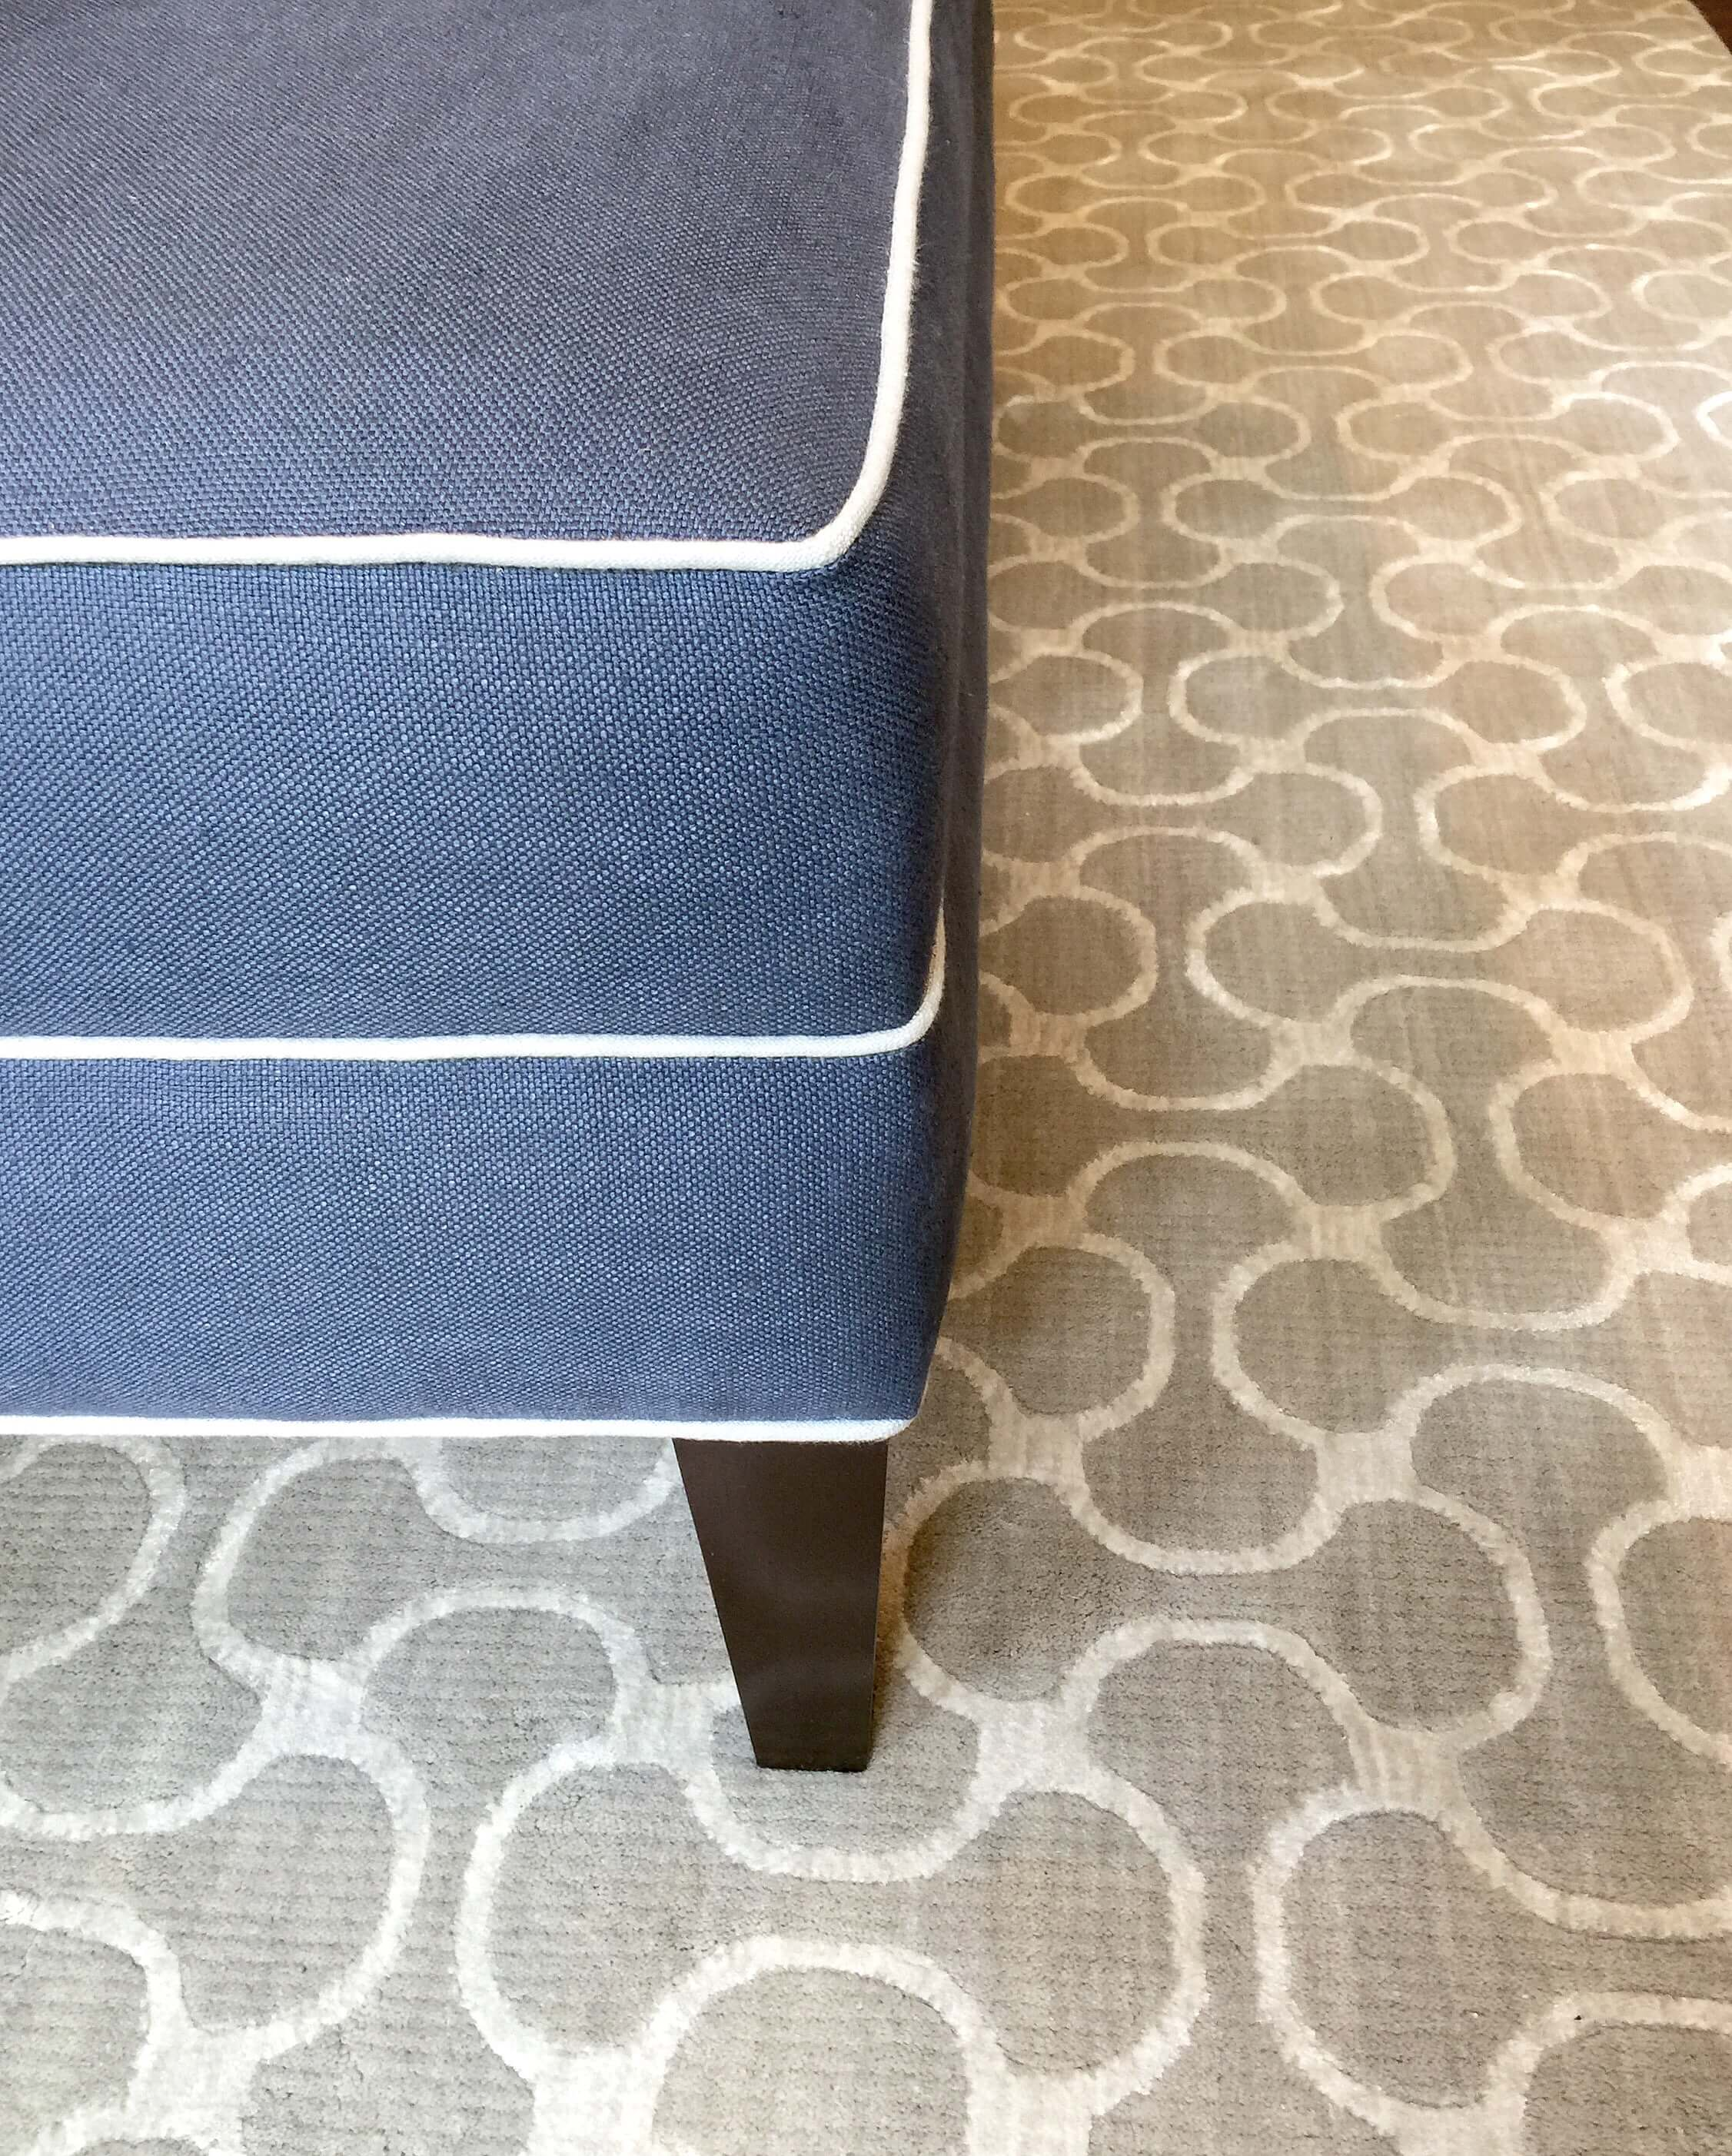 Custom ottoman details with contrasting welting #ottoman